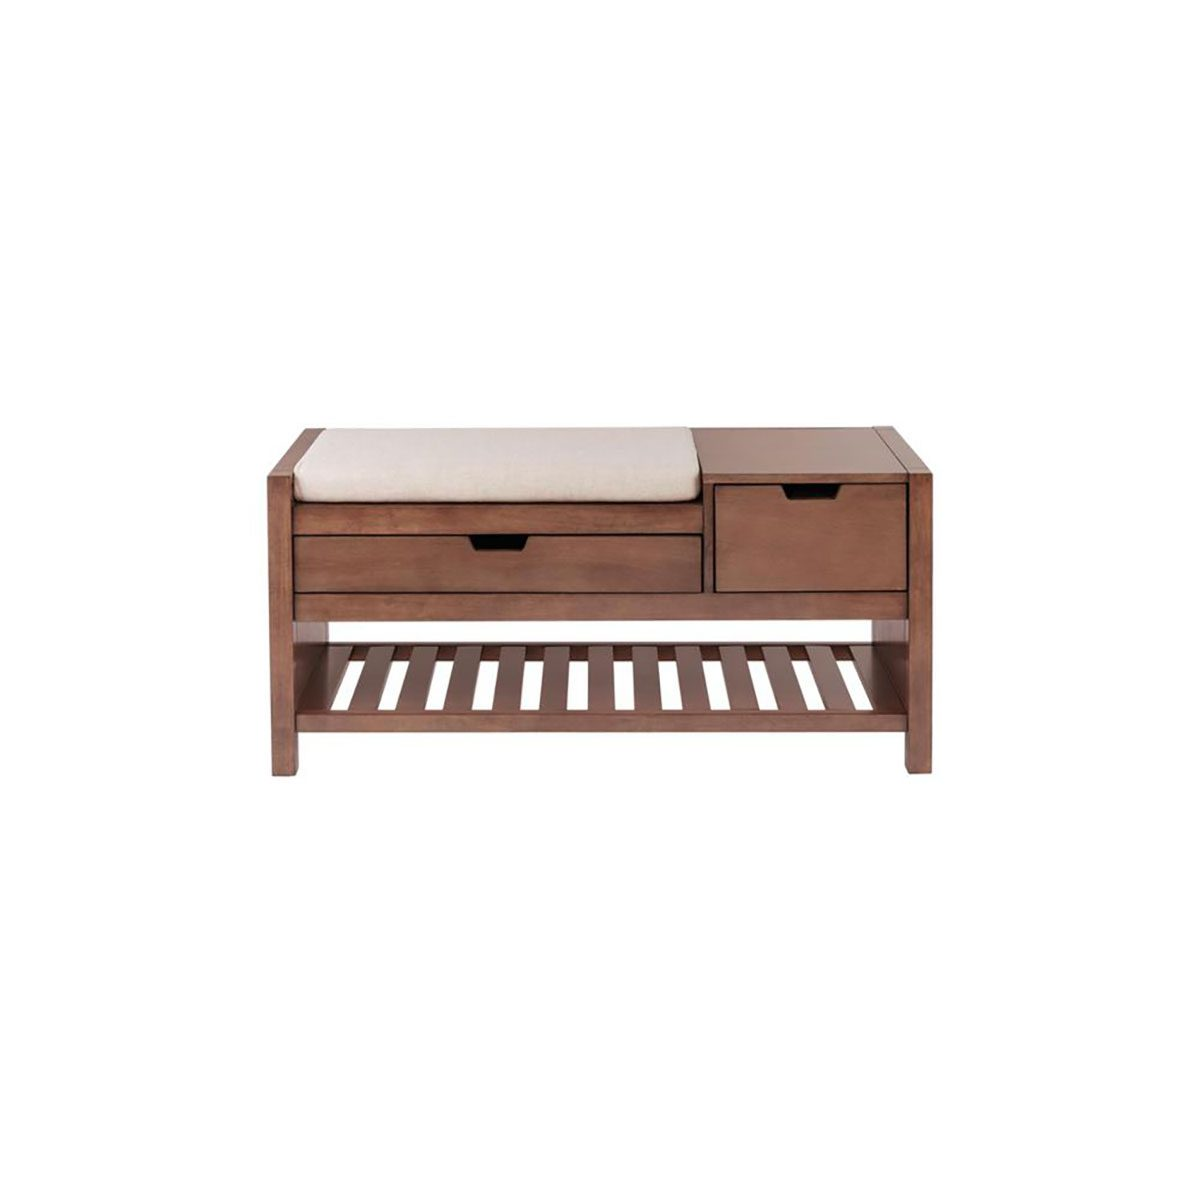 Entryway Bench Haze Home Decorators Collection Dining Benches Sk19326br1 H 64 1000